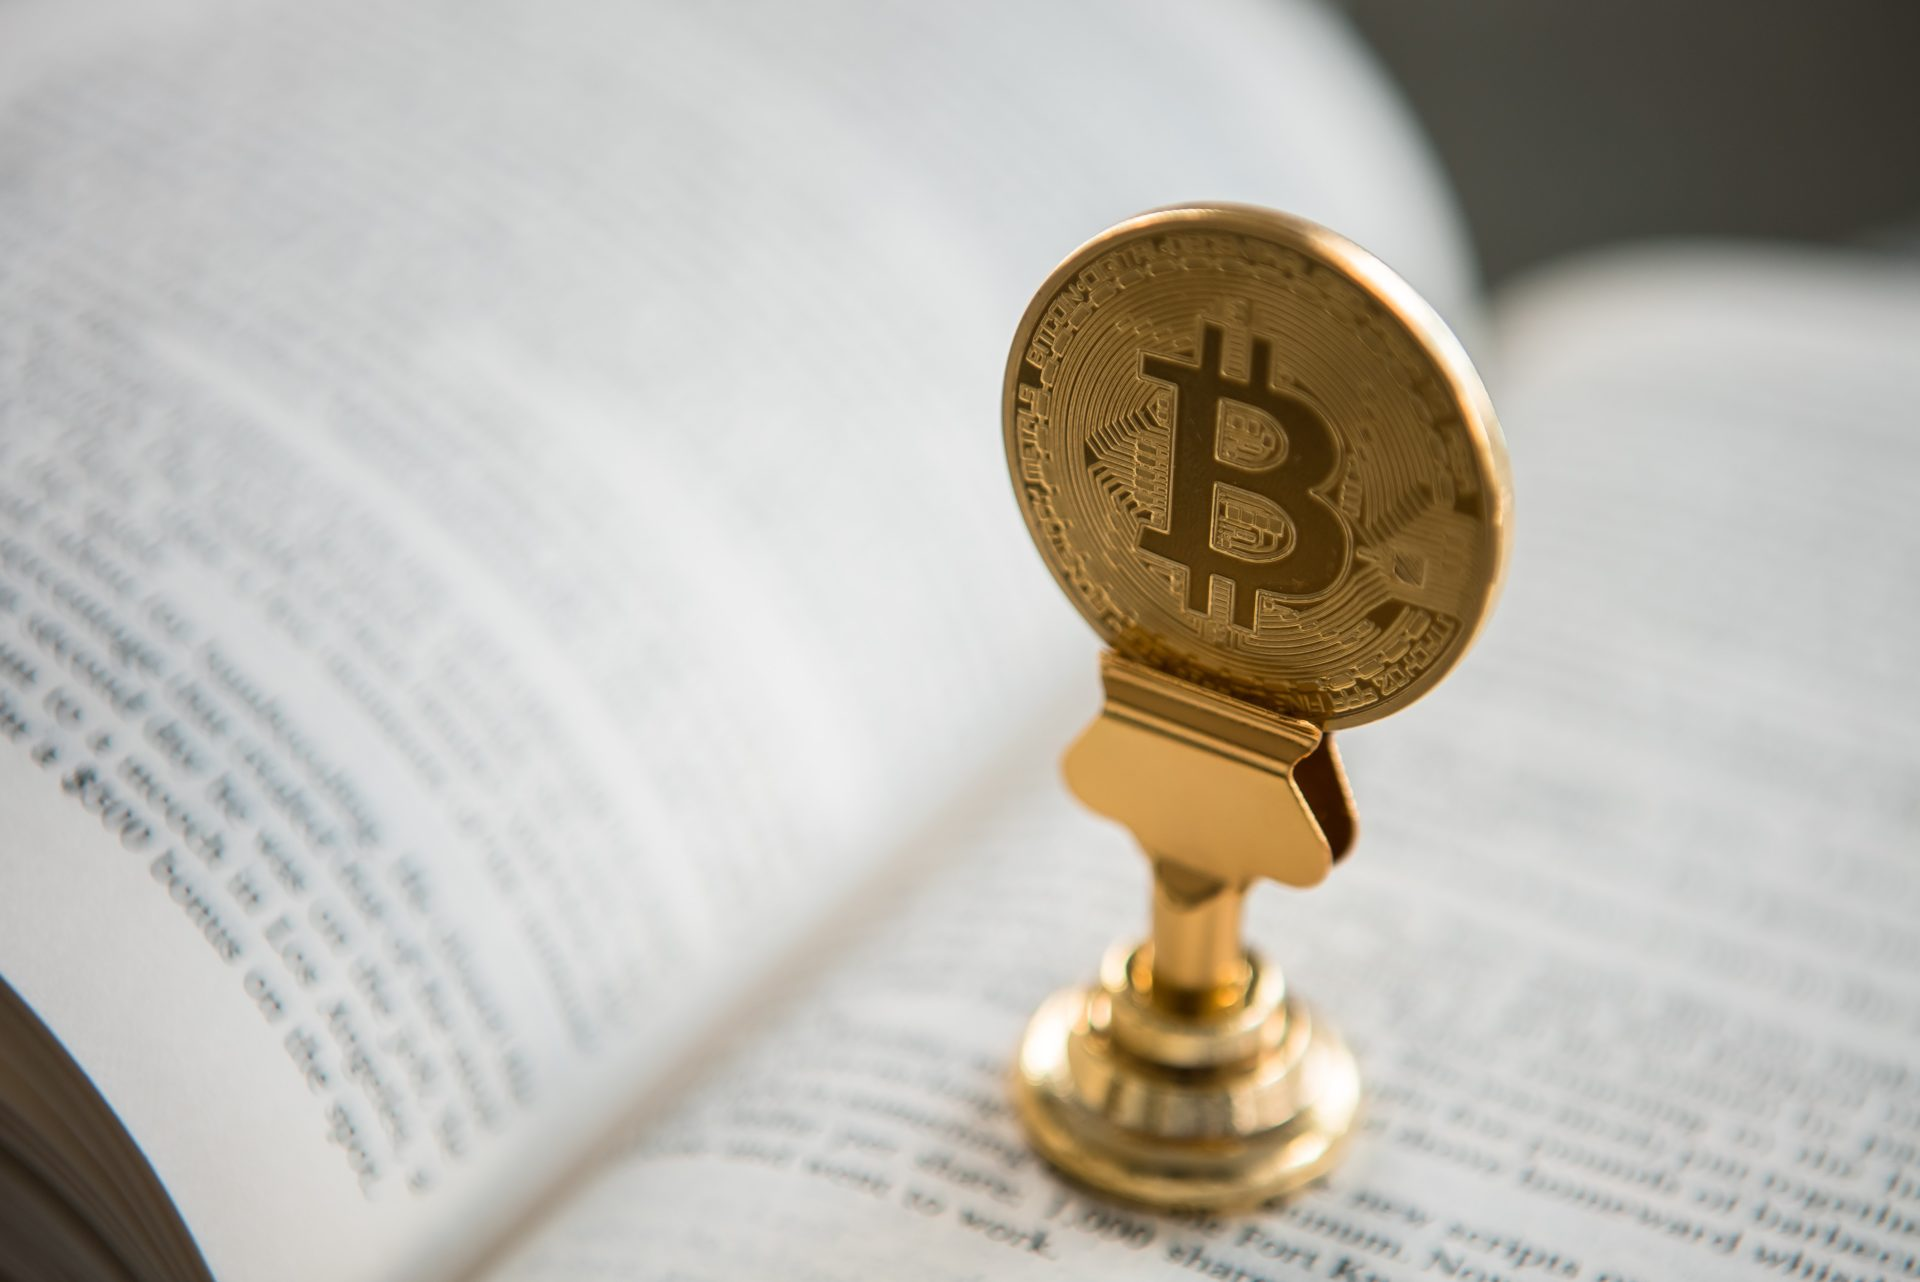 Analyst: Bitcoin (BTC) Closing Weekly Above $11,500, Sets Stage for 20% Boom 13